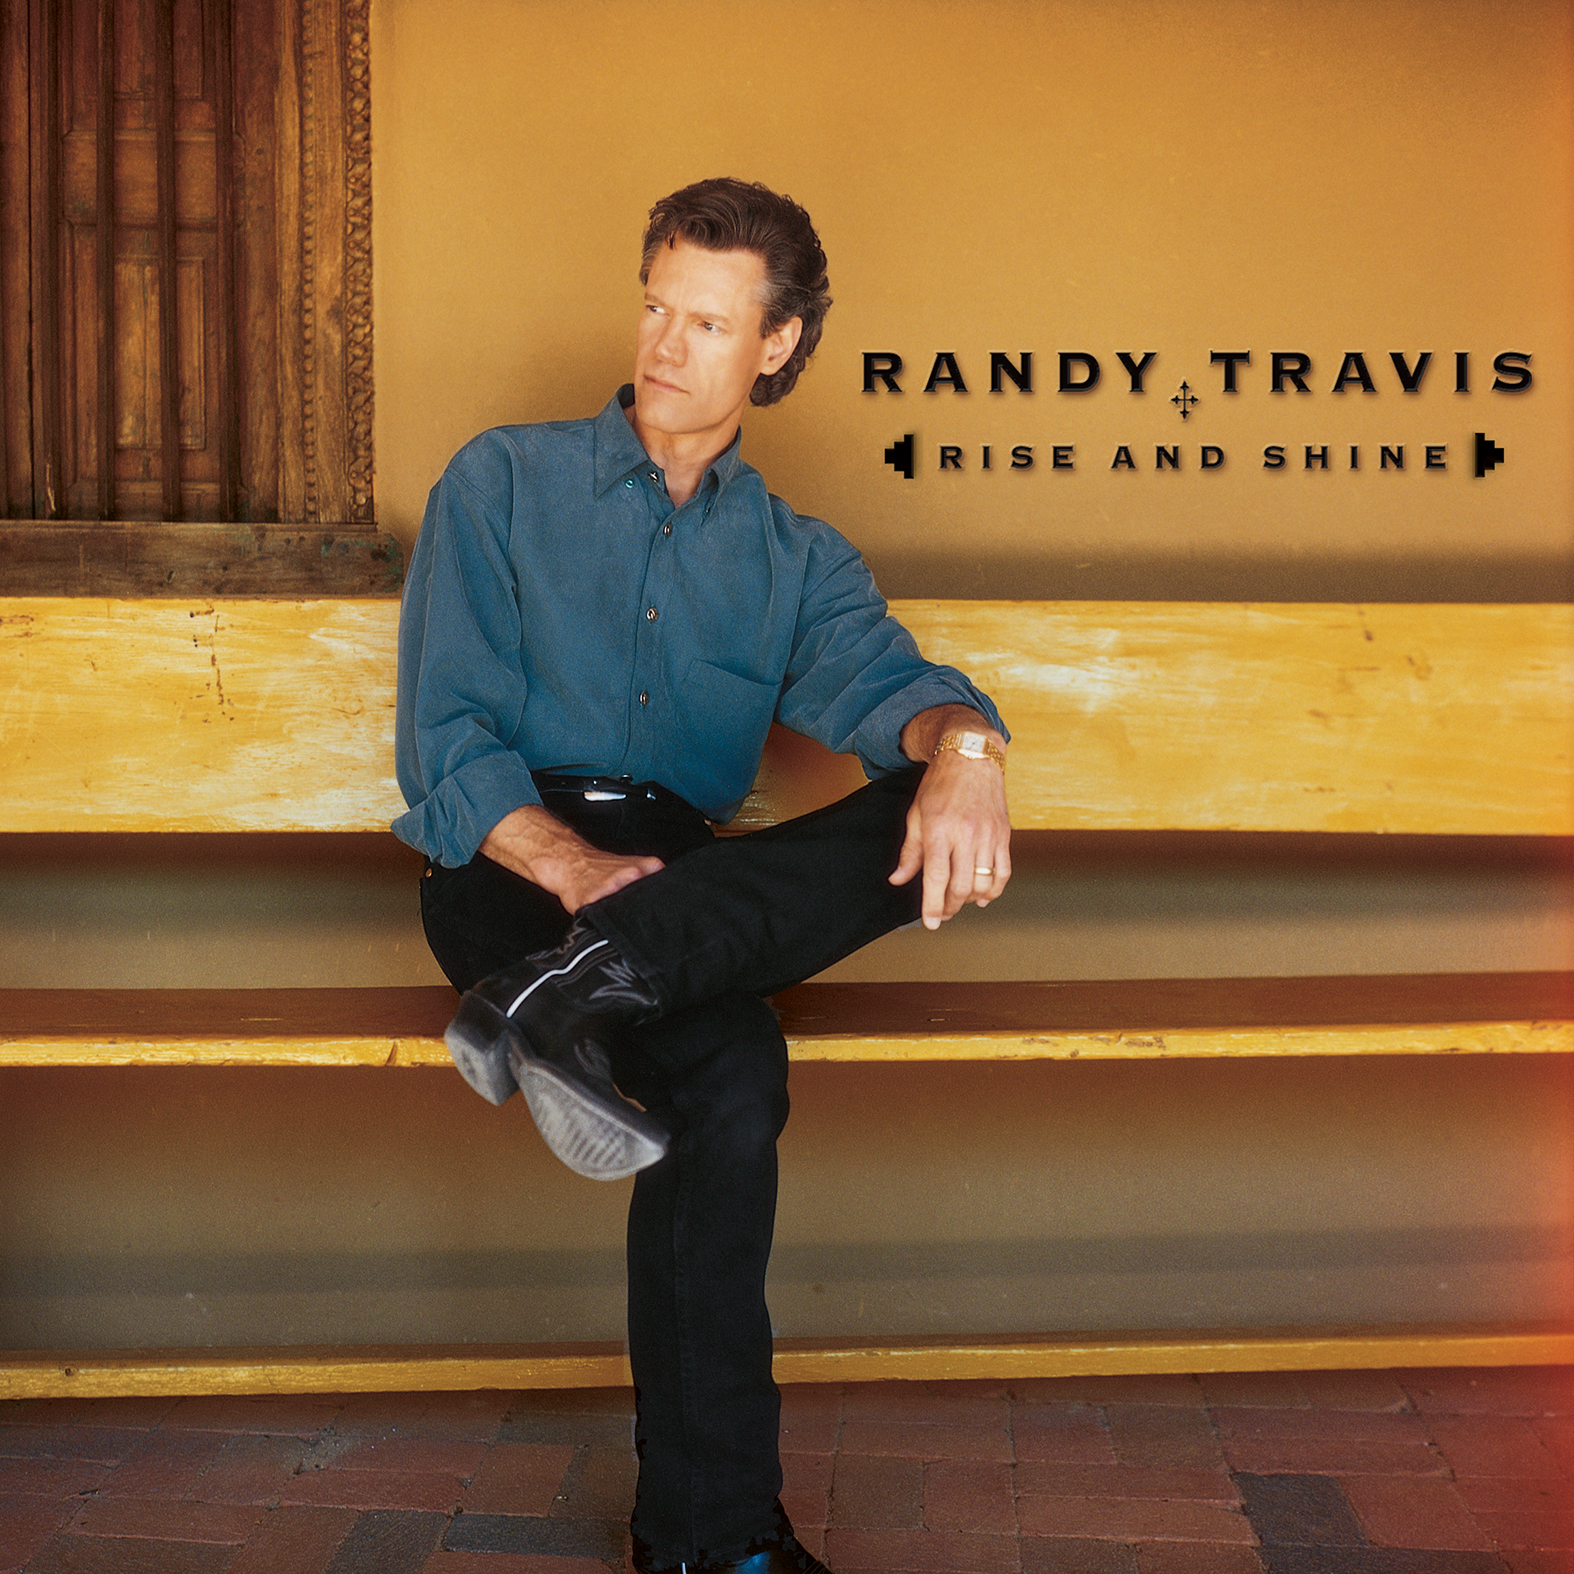 Randy Travis Rise And Shine